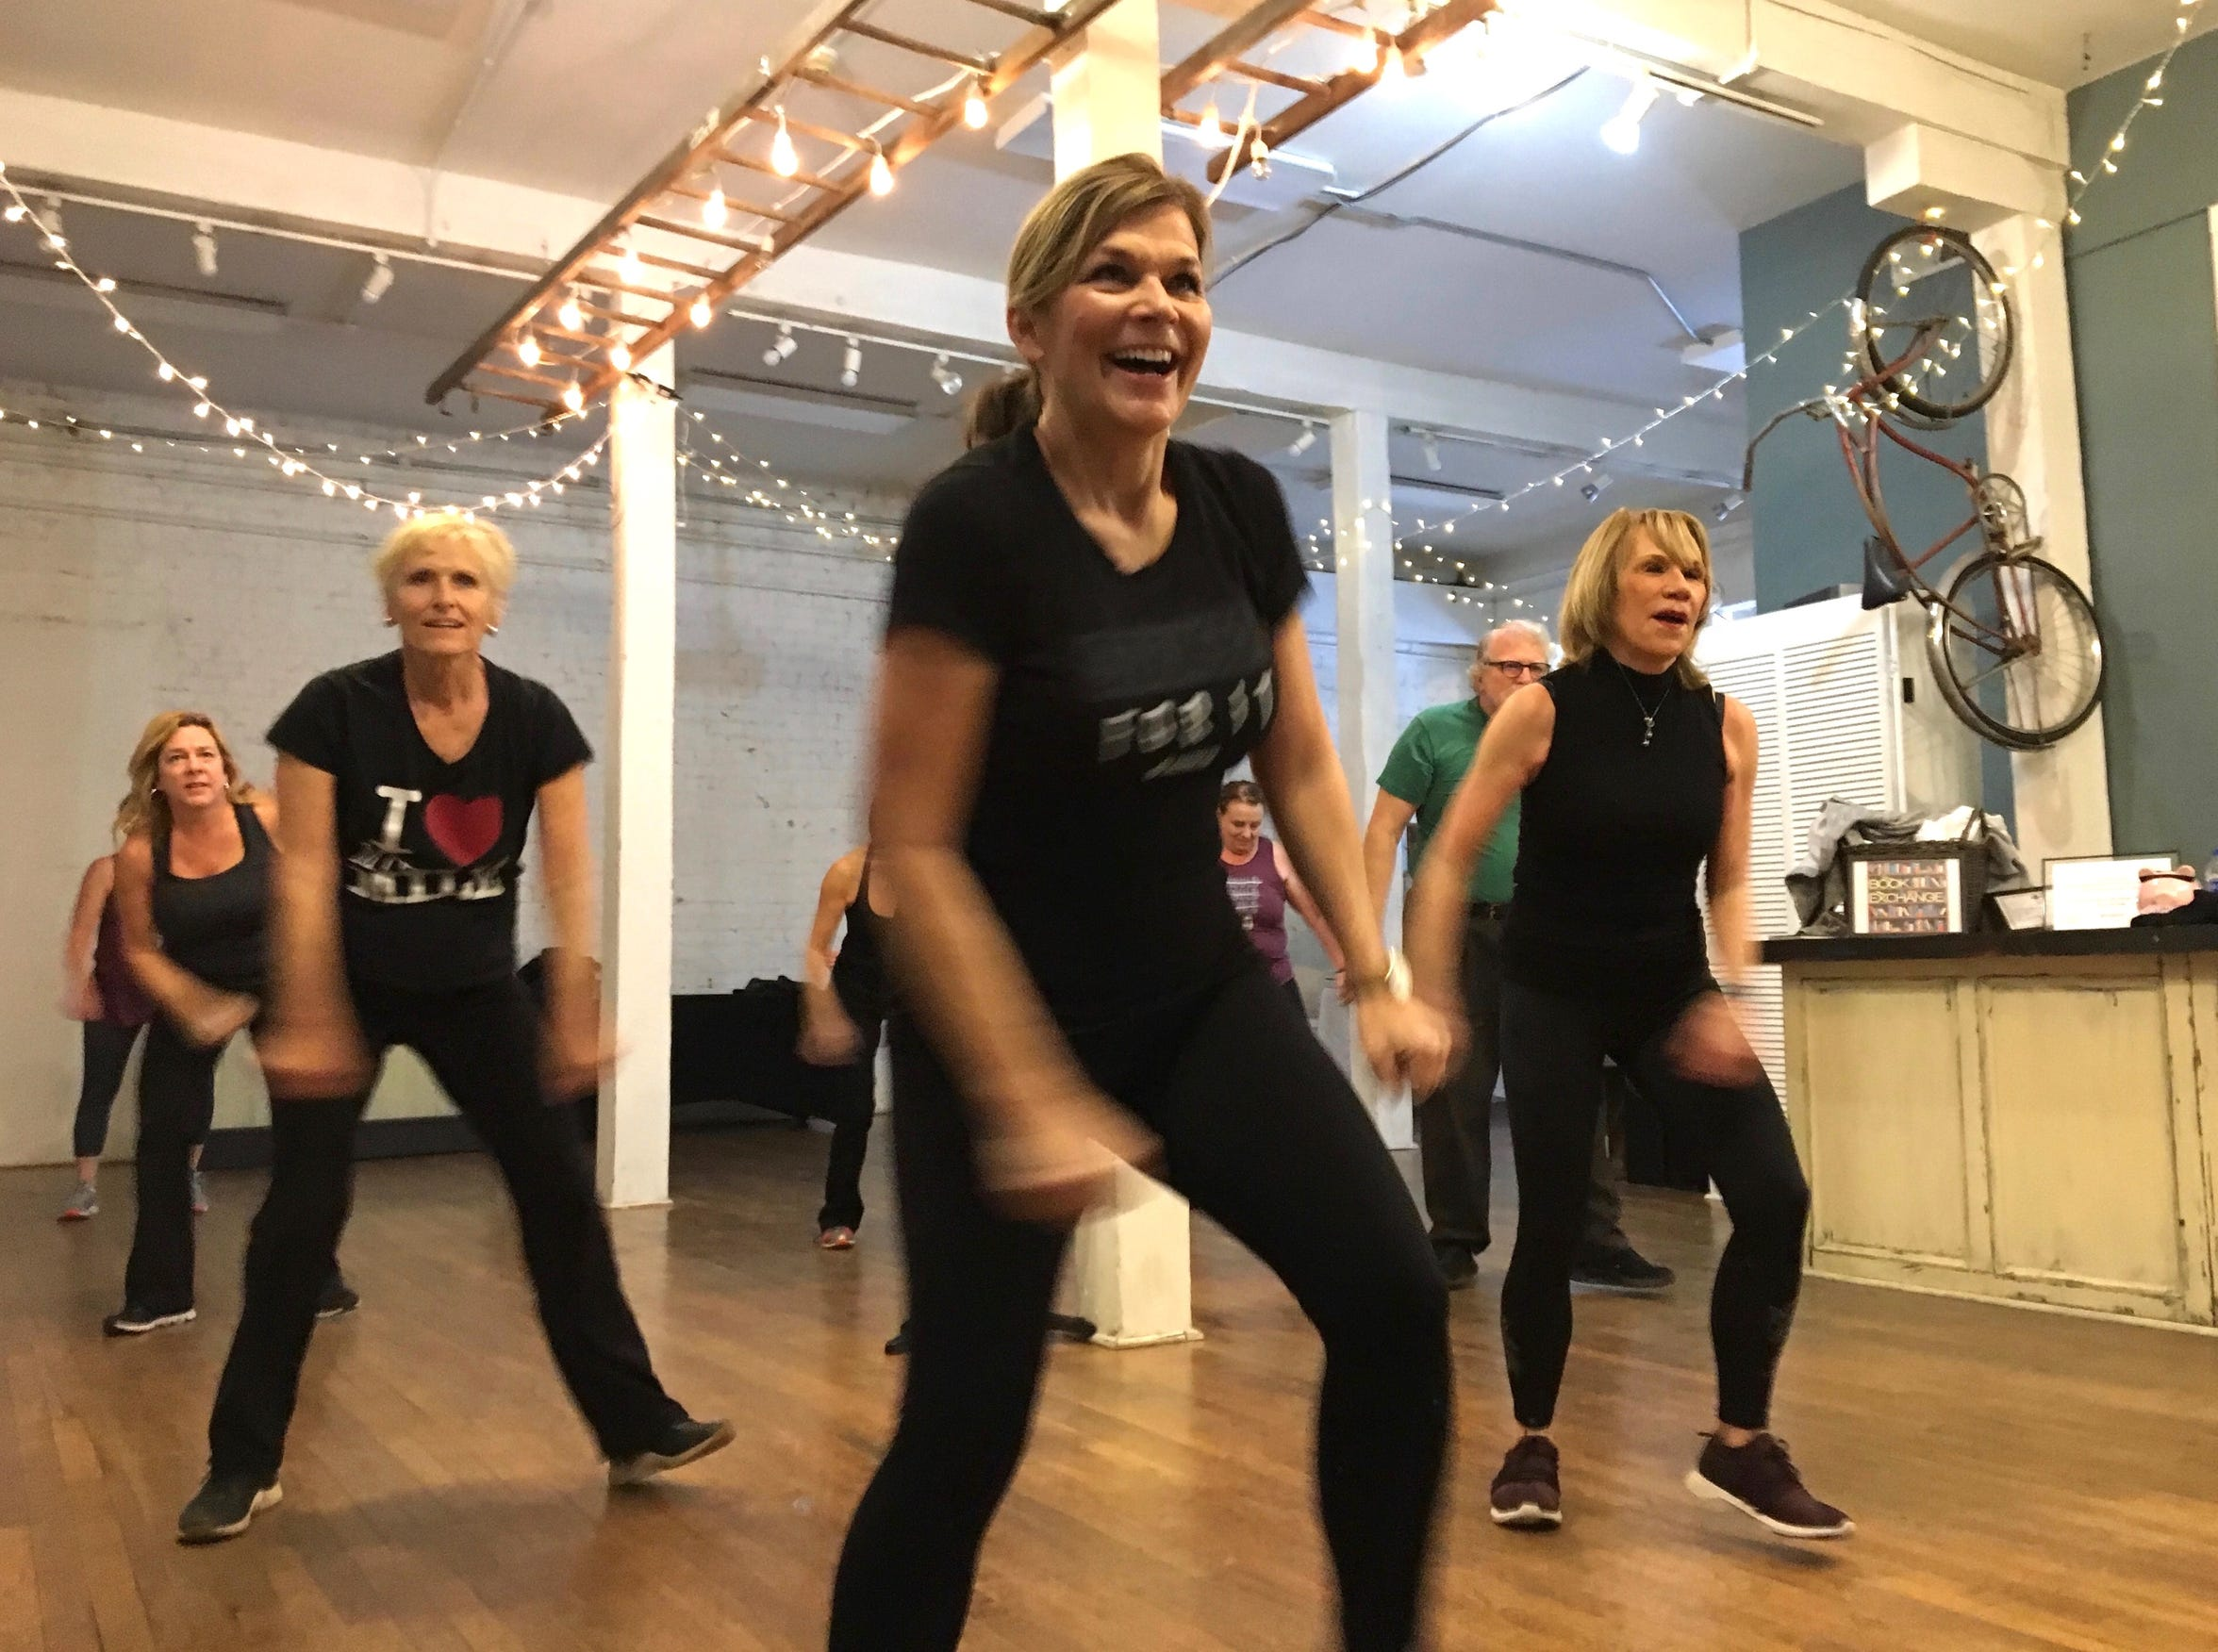 Photographed at Jazzercise Staunton at Queen City Place, about a dozen people take Maryann Acuff's Jazzercise class on Friday, Dec. 14, 2018. An eclectic group, everyone in class has come to feel like family.